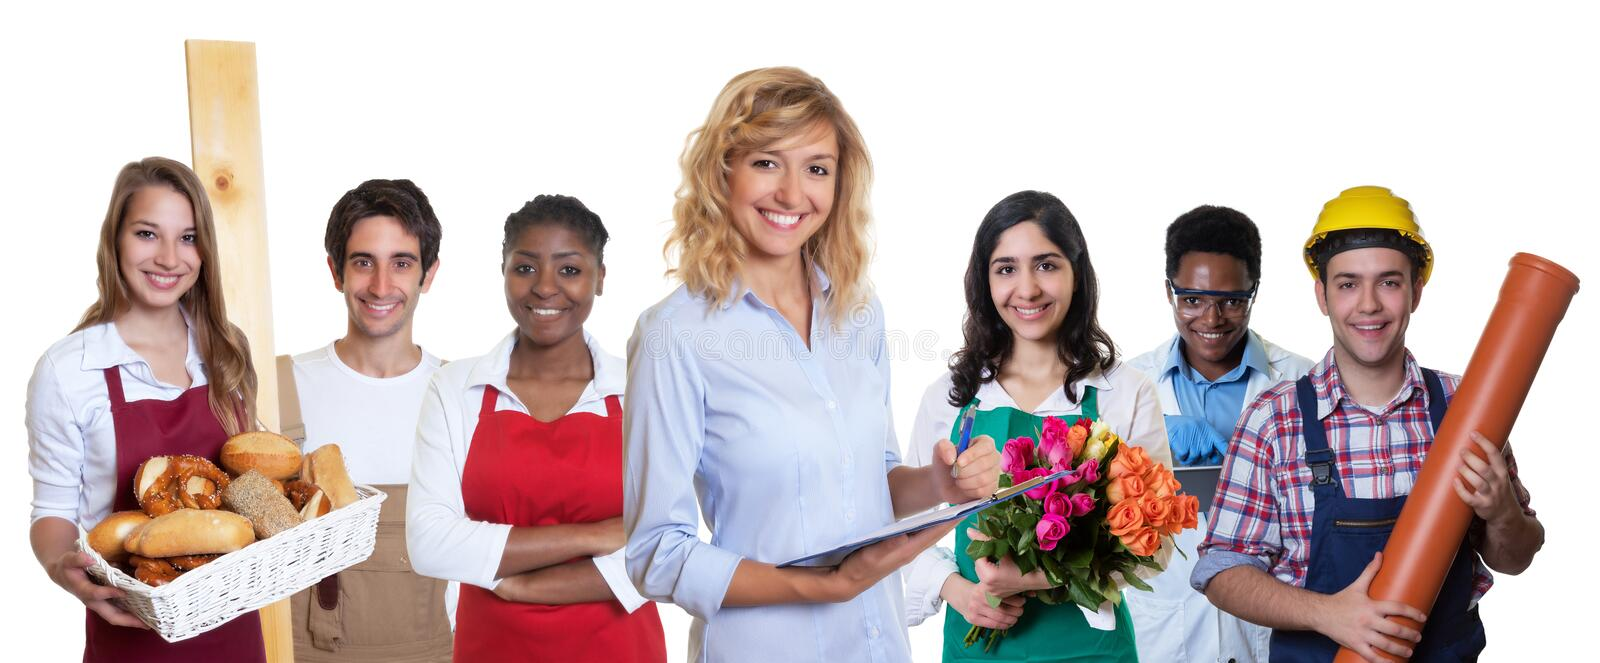 Smiling female business trainee with group of other international apprentices stock photo